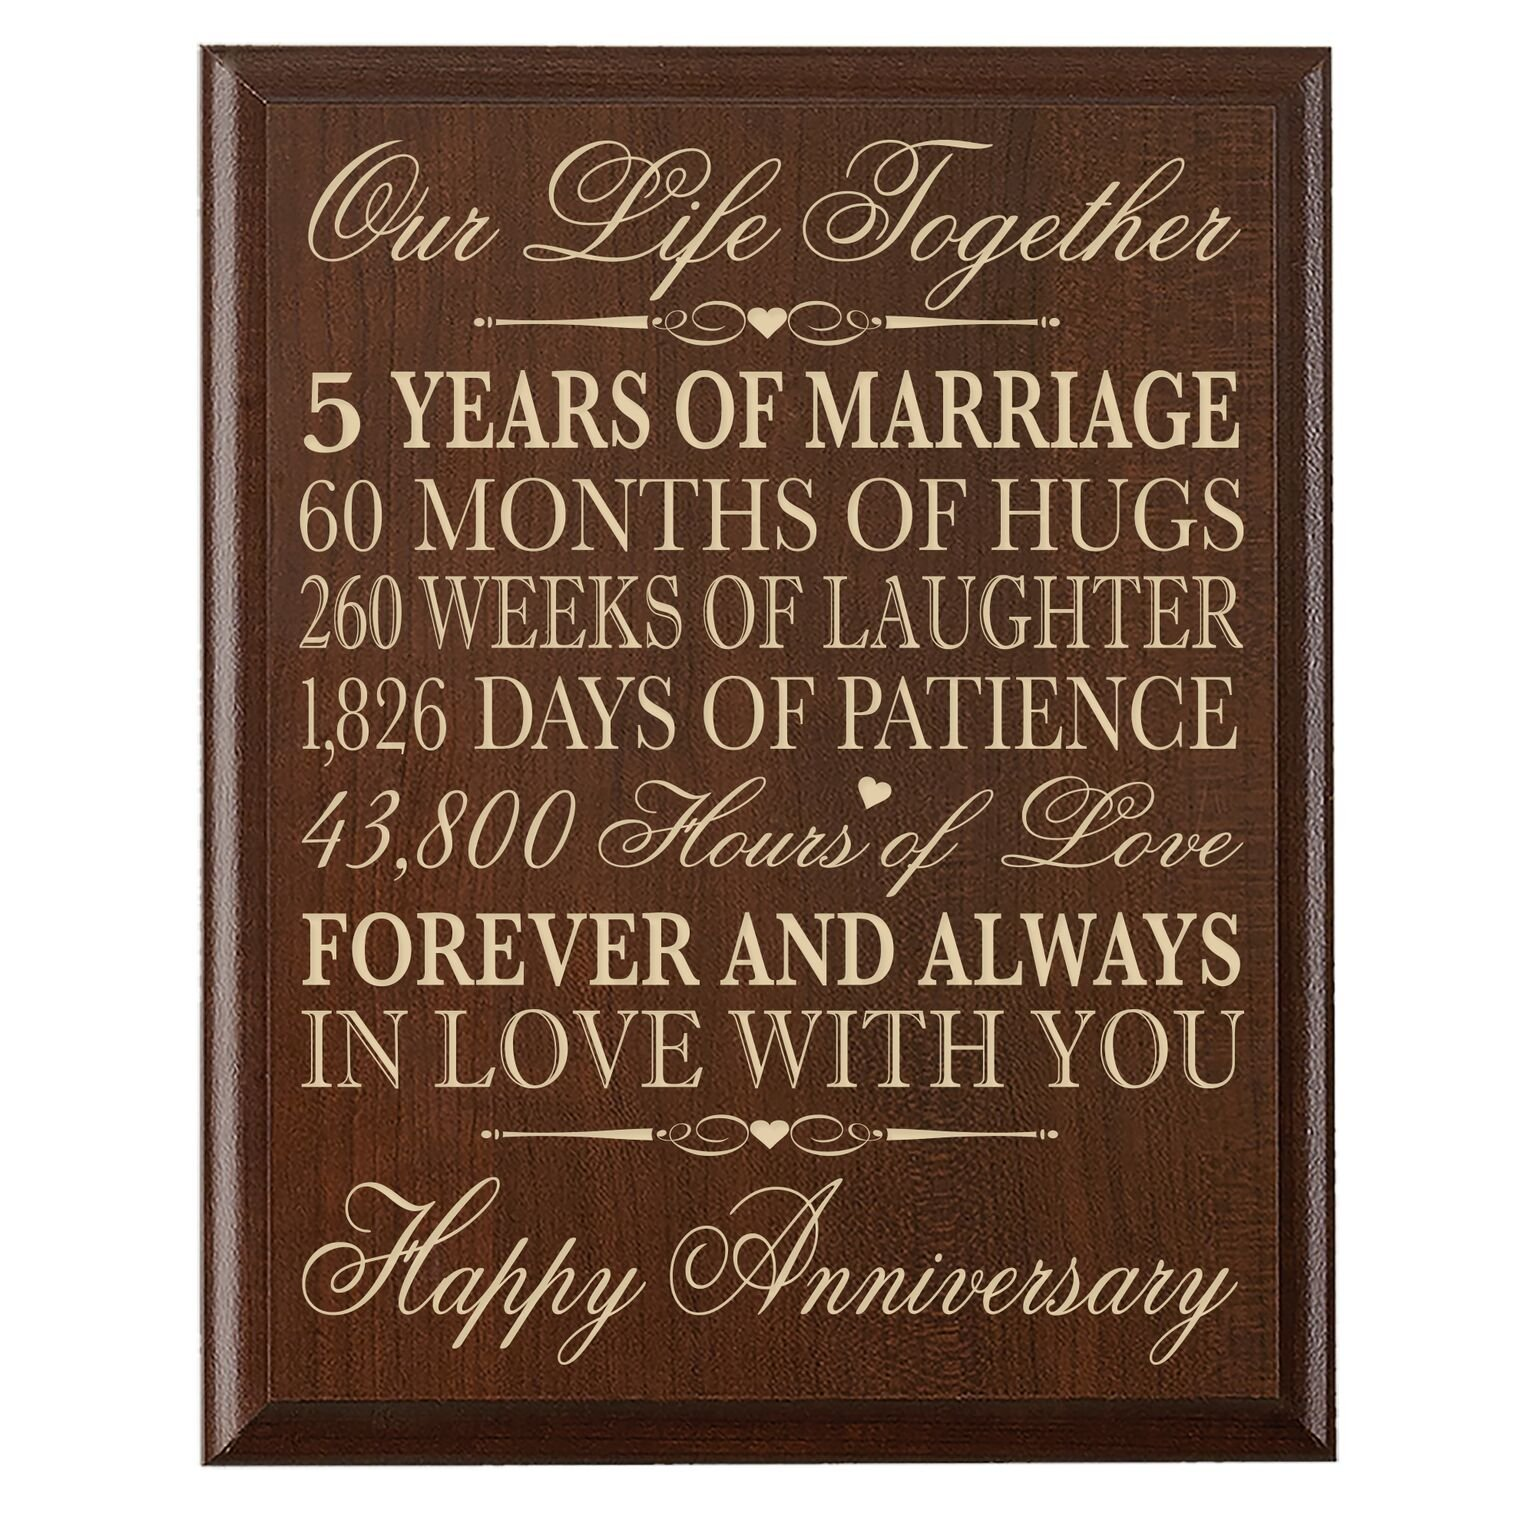 LifeSong Milestones 5th Wedding Anniversary Cherry Wall Plaque Gifts for Couple, 5th Anniversary Gifts for Her,5th Wedding Anniversary Gifts for Him 12 inches wide X 15 inches high Wall Plaque By by LifeSong Milestones